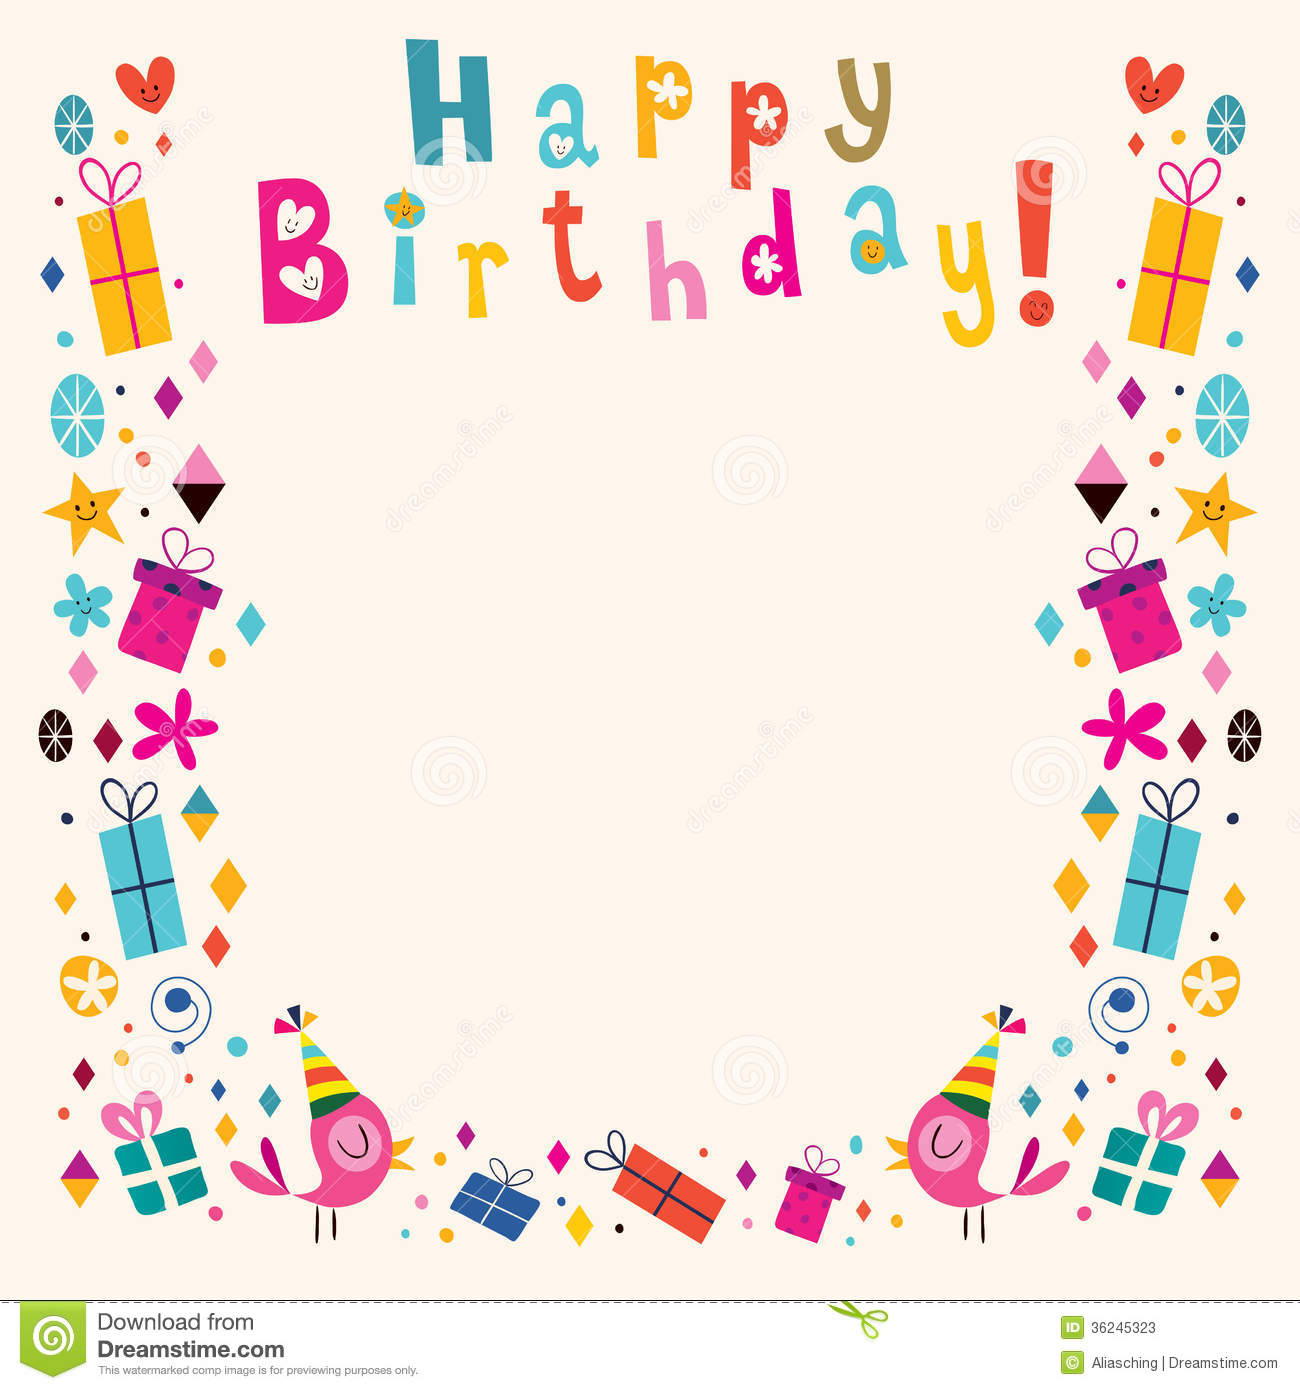 50th birthday border ; 50th-birthday-border-clipart-2